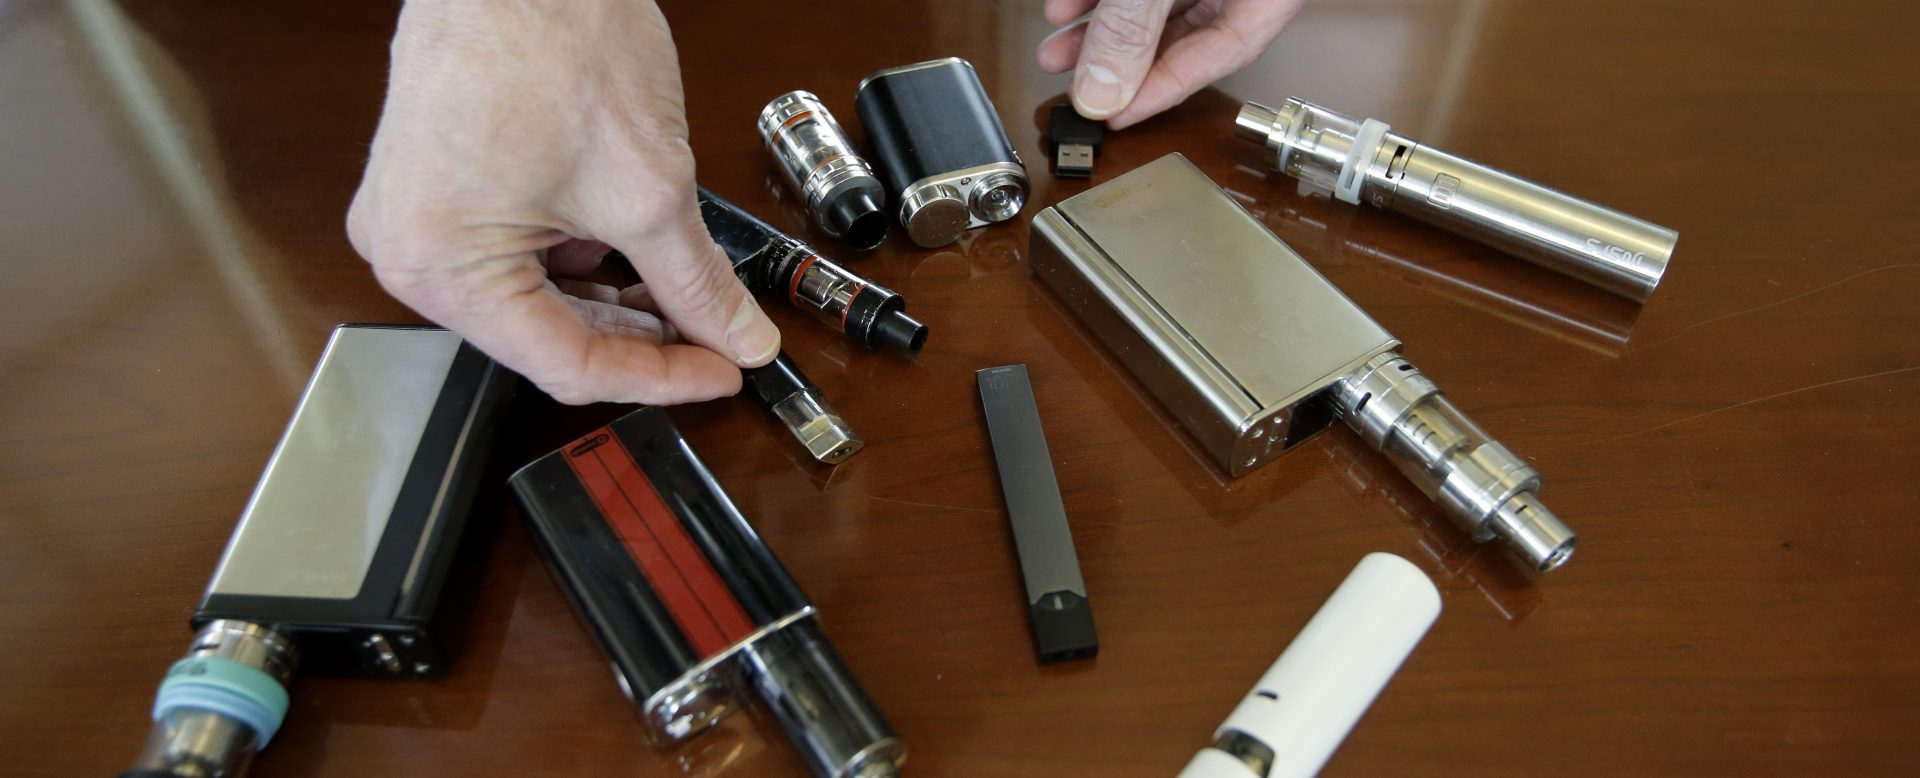 FILE PHOTO: In this Tuesday, April 10, 2018 file photo Marshfield High School Principle Robert Keuther displays vapes that were confiscated from students in Marshfield, Mass.